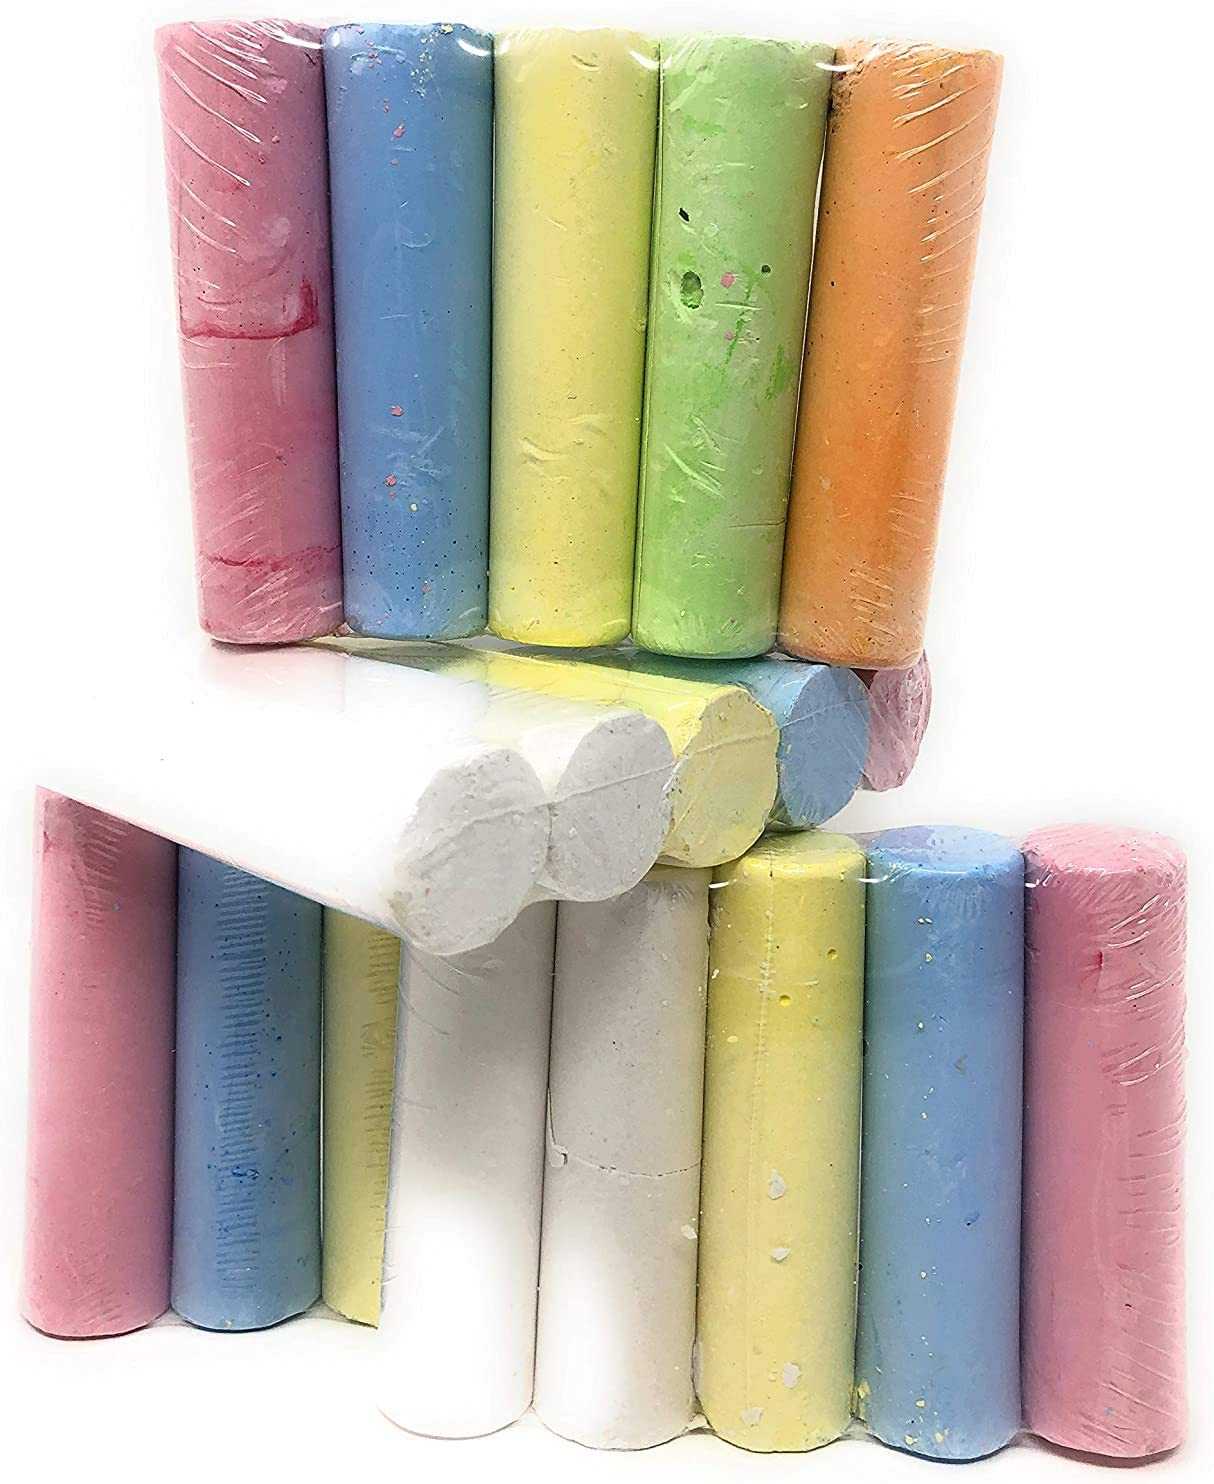 Jumbo Sidewalk Chalk Comes with 1 of Each Color Red Orange Yellow Green Blue Purple White Total of 7 Pieces of Chalk.